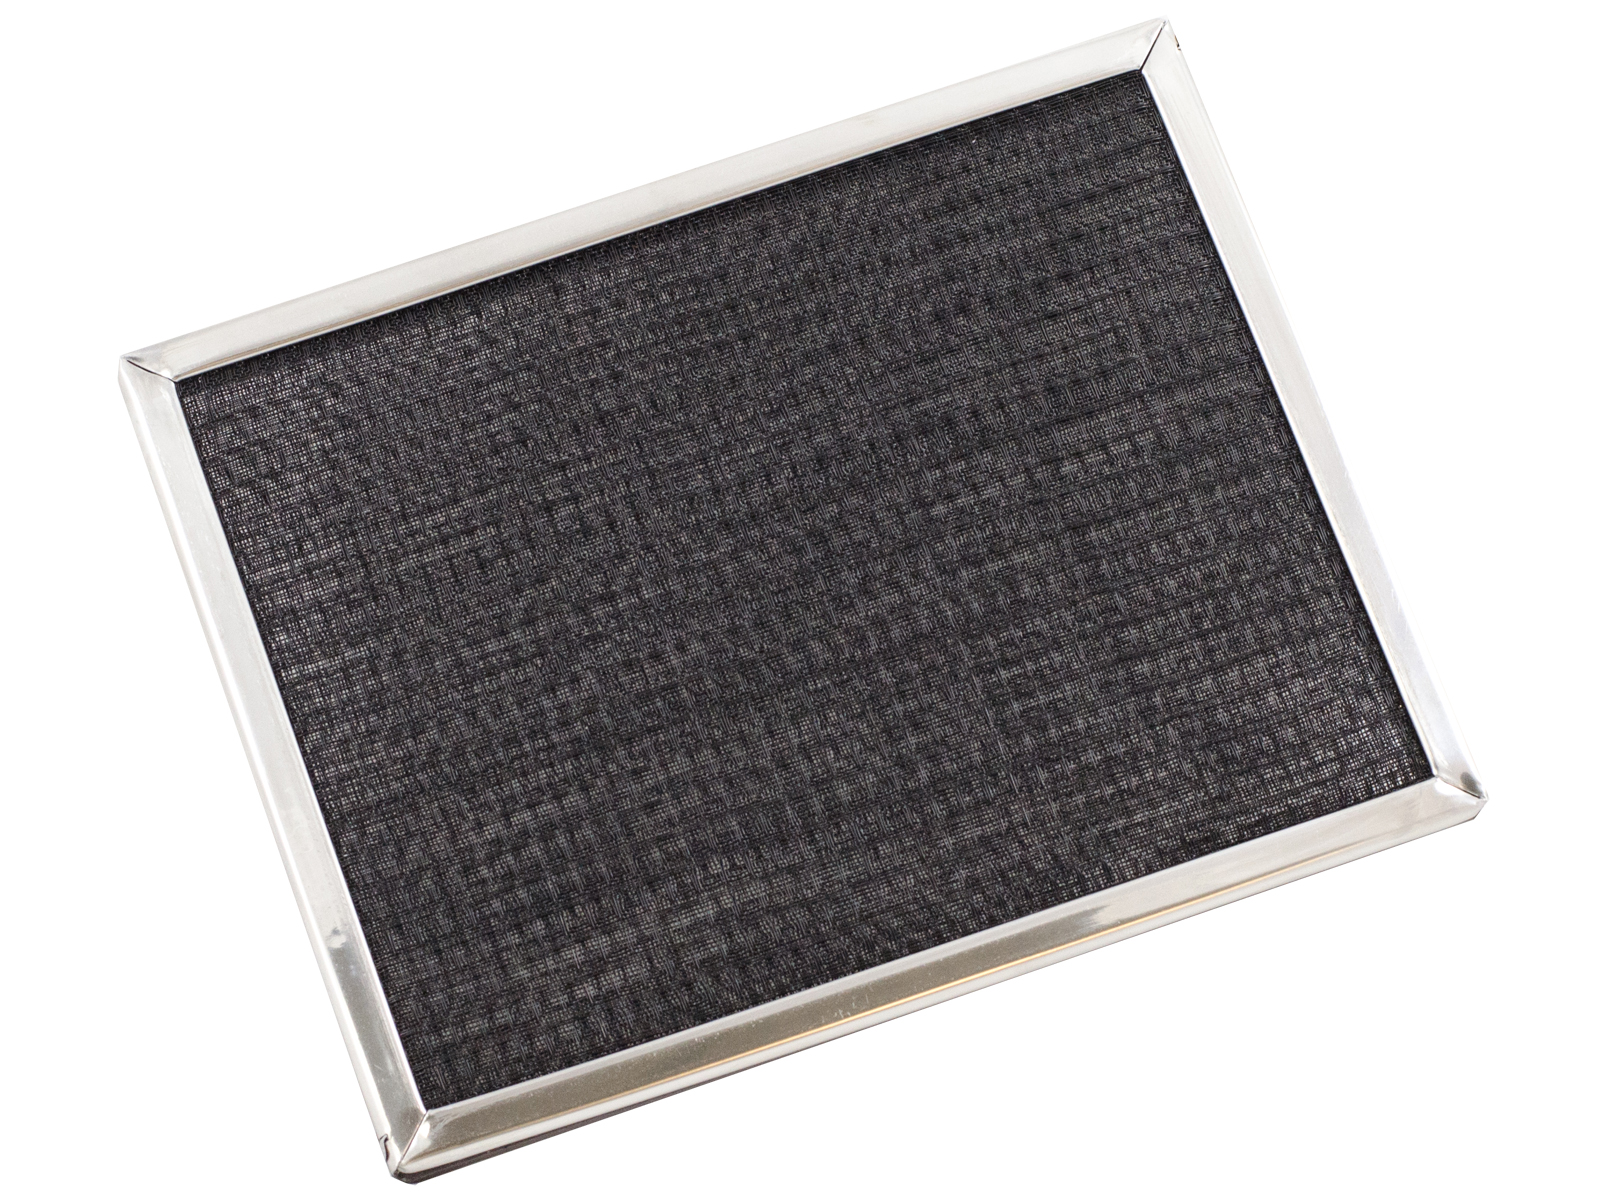 PreVent Model R Air Intake Filter